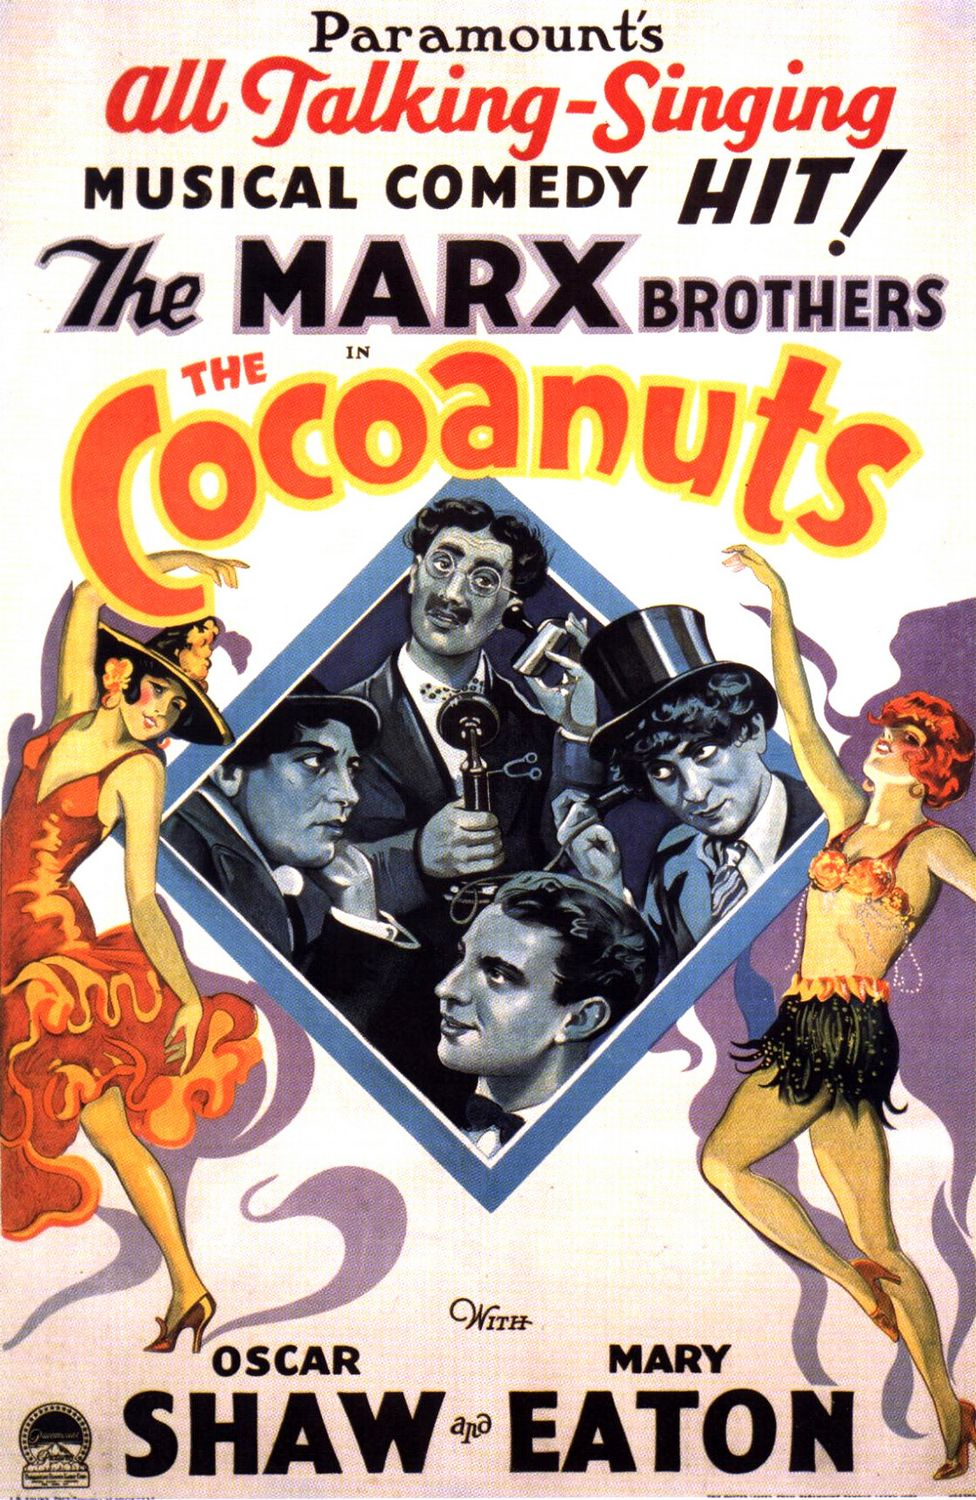 Marx Brothers, The Cocoanuts : DVDbash